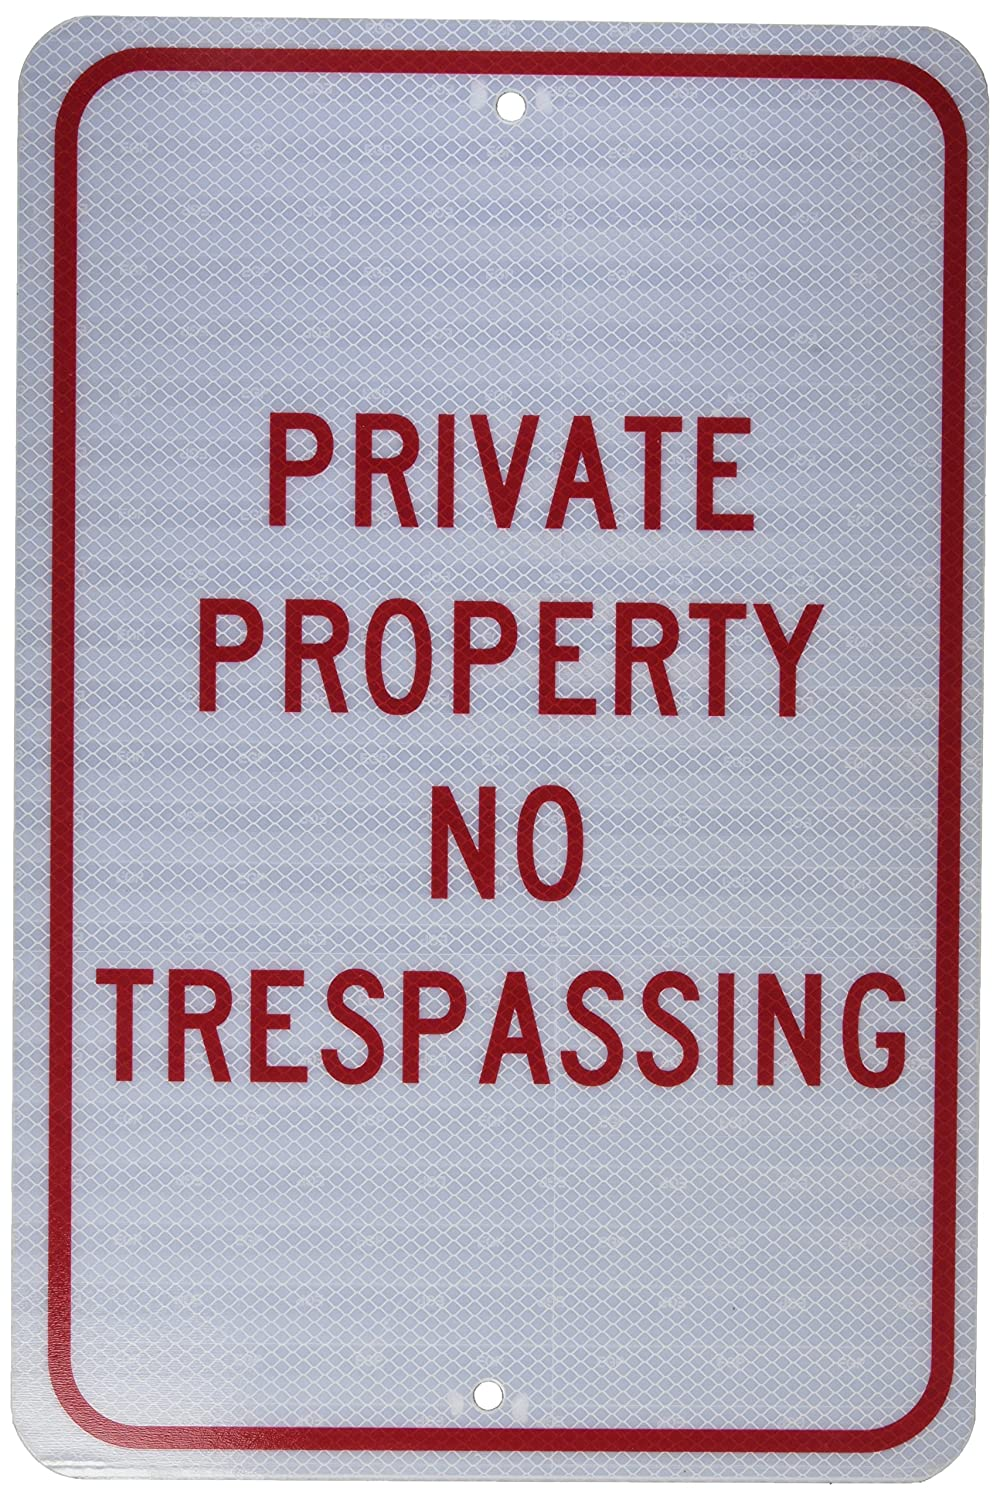 12 High X 18 Wide SmartSign 3M Engineer Grade Reflective Sign Black//Red on White LegendPrivate Property No Trespassing No Dumping